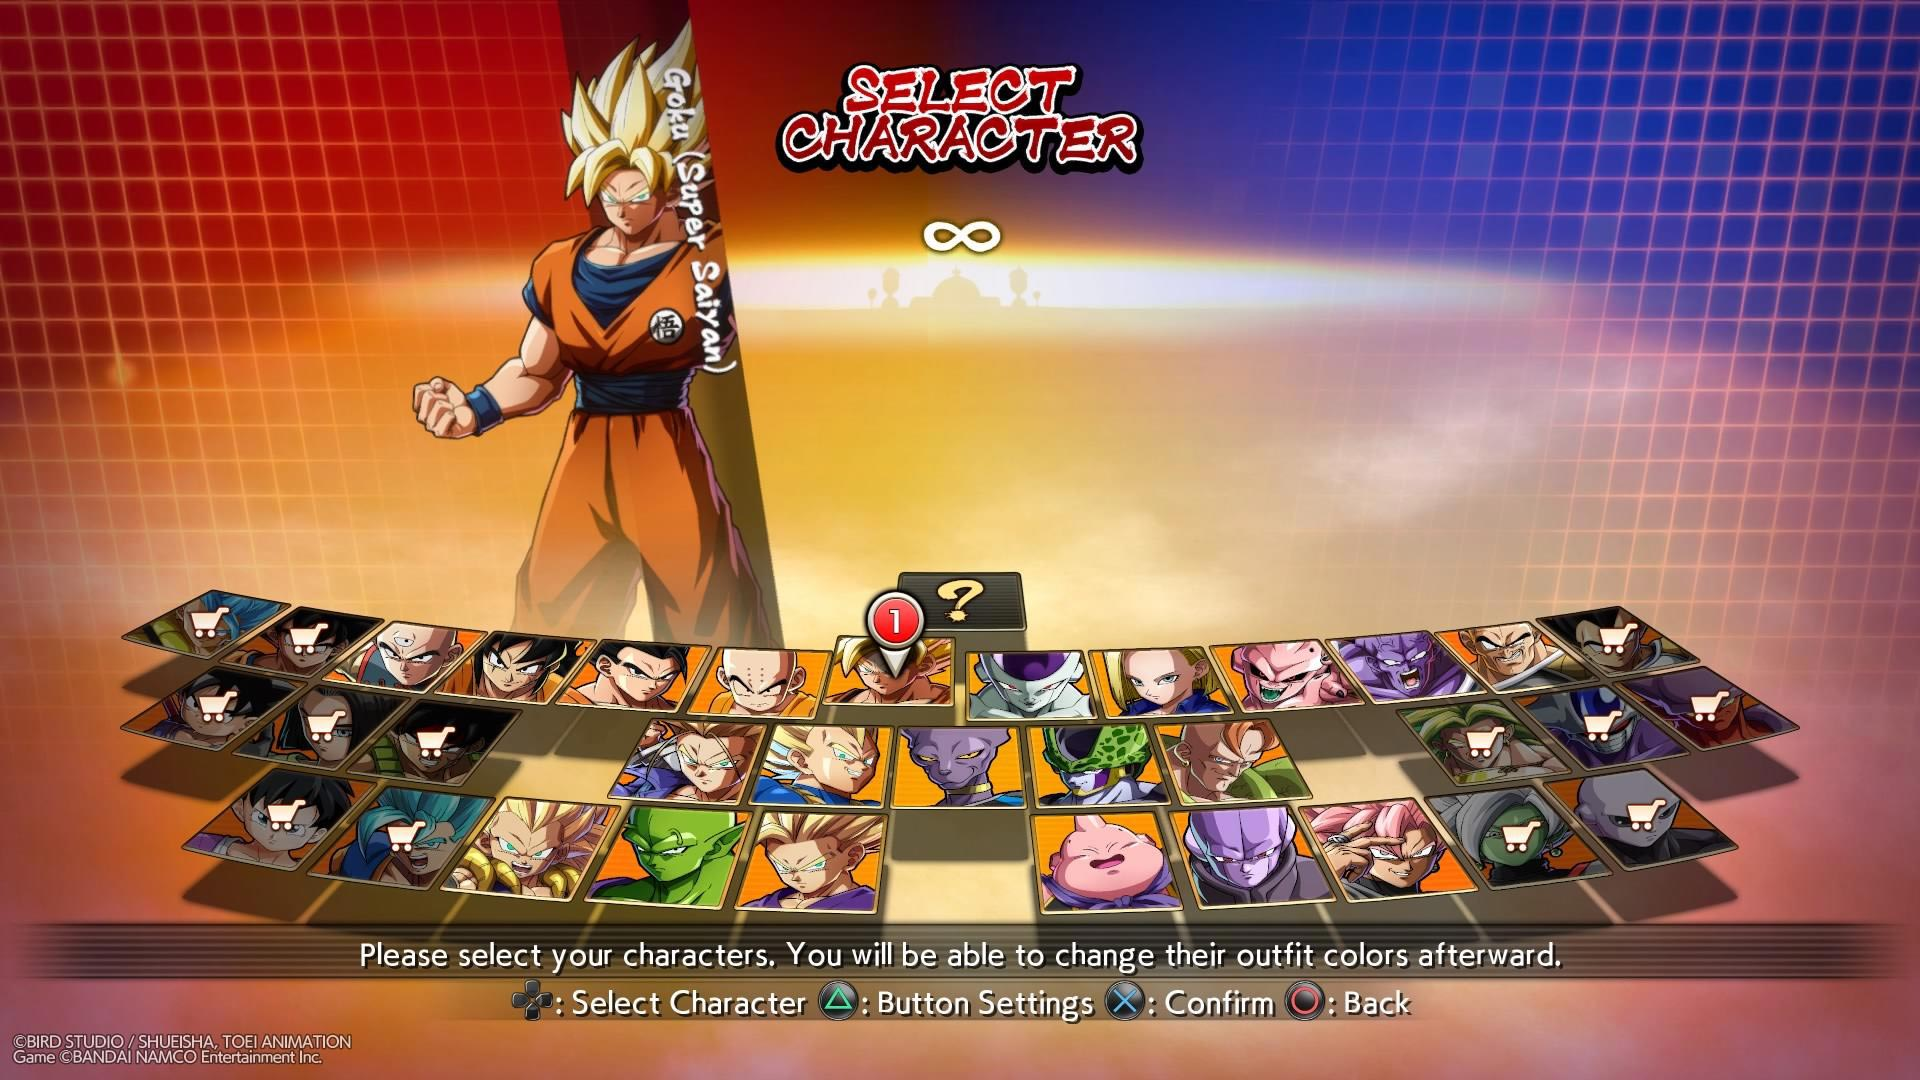 DBFZ Char Sel 1 out of 2 image gallery